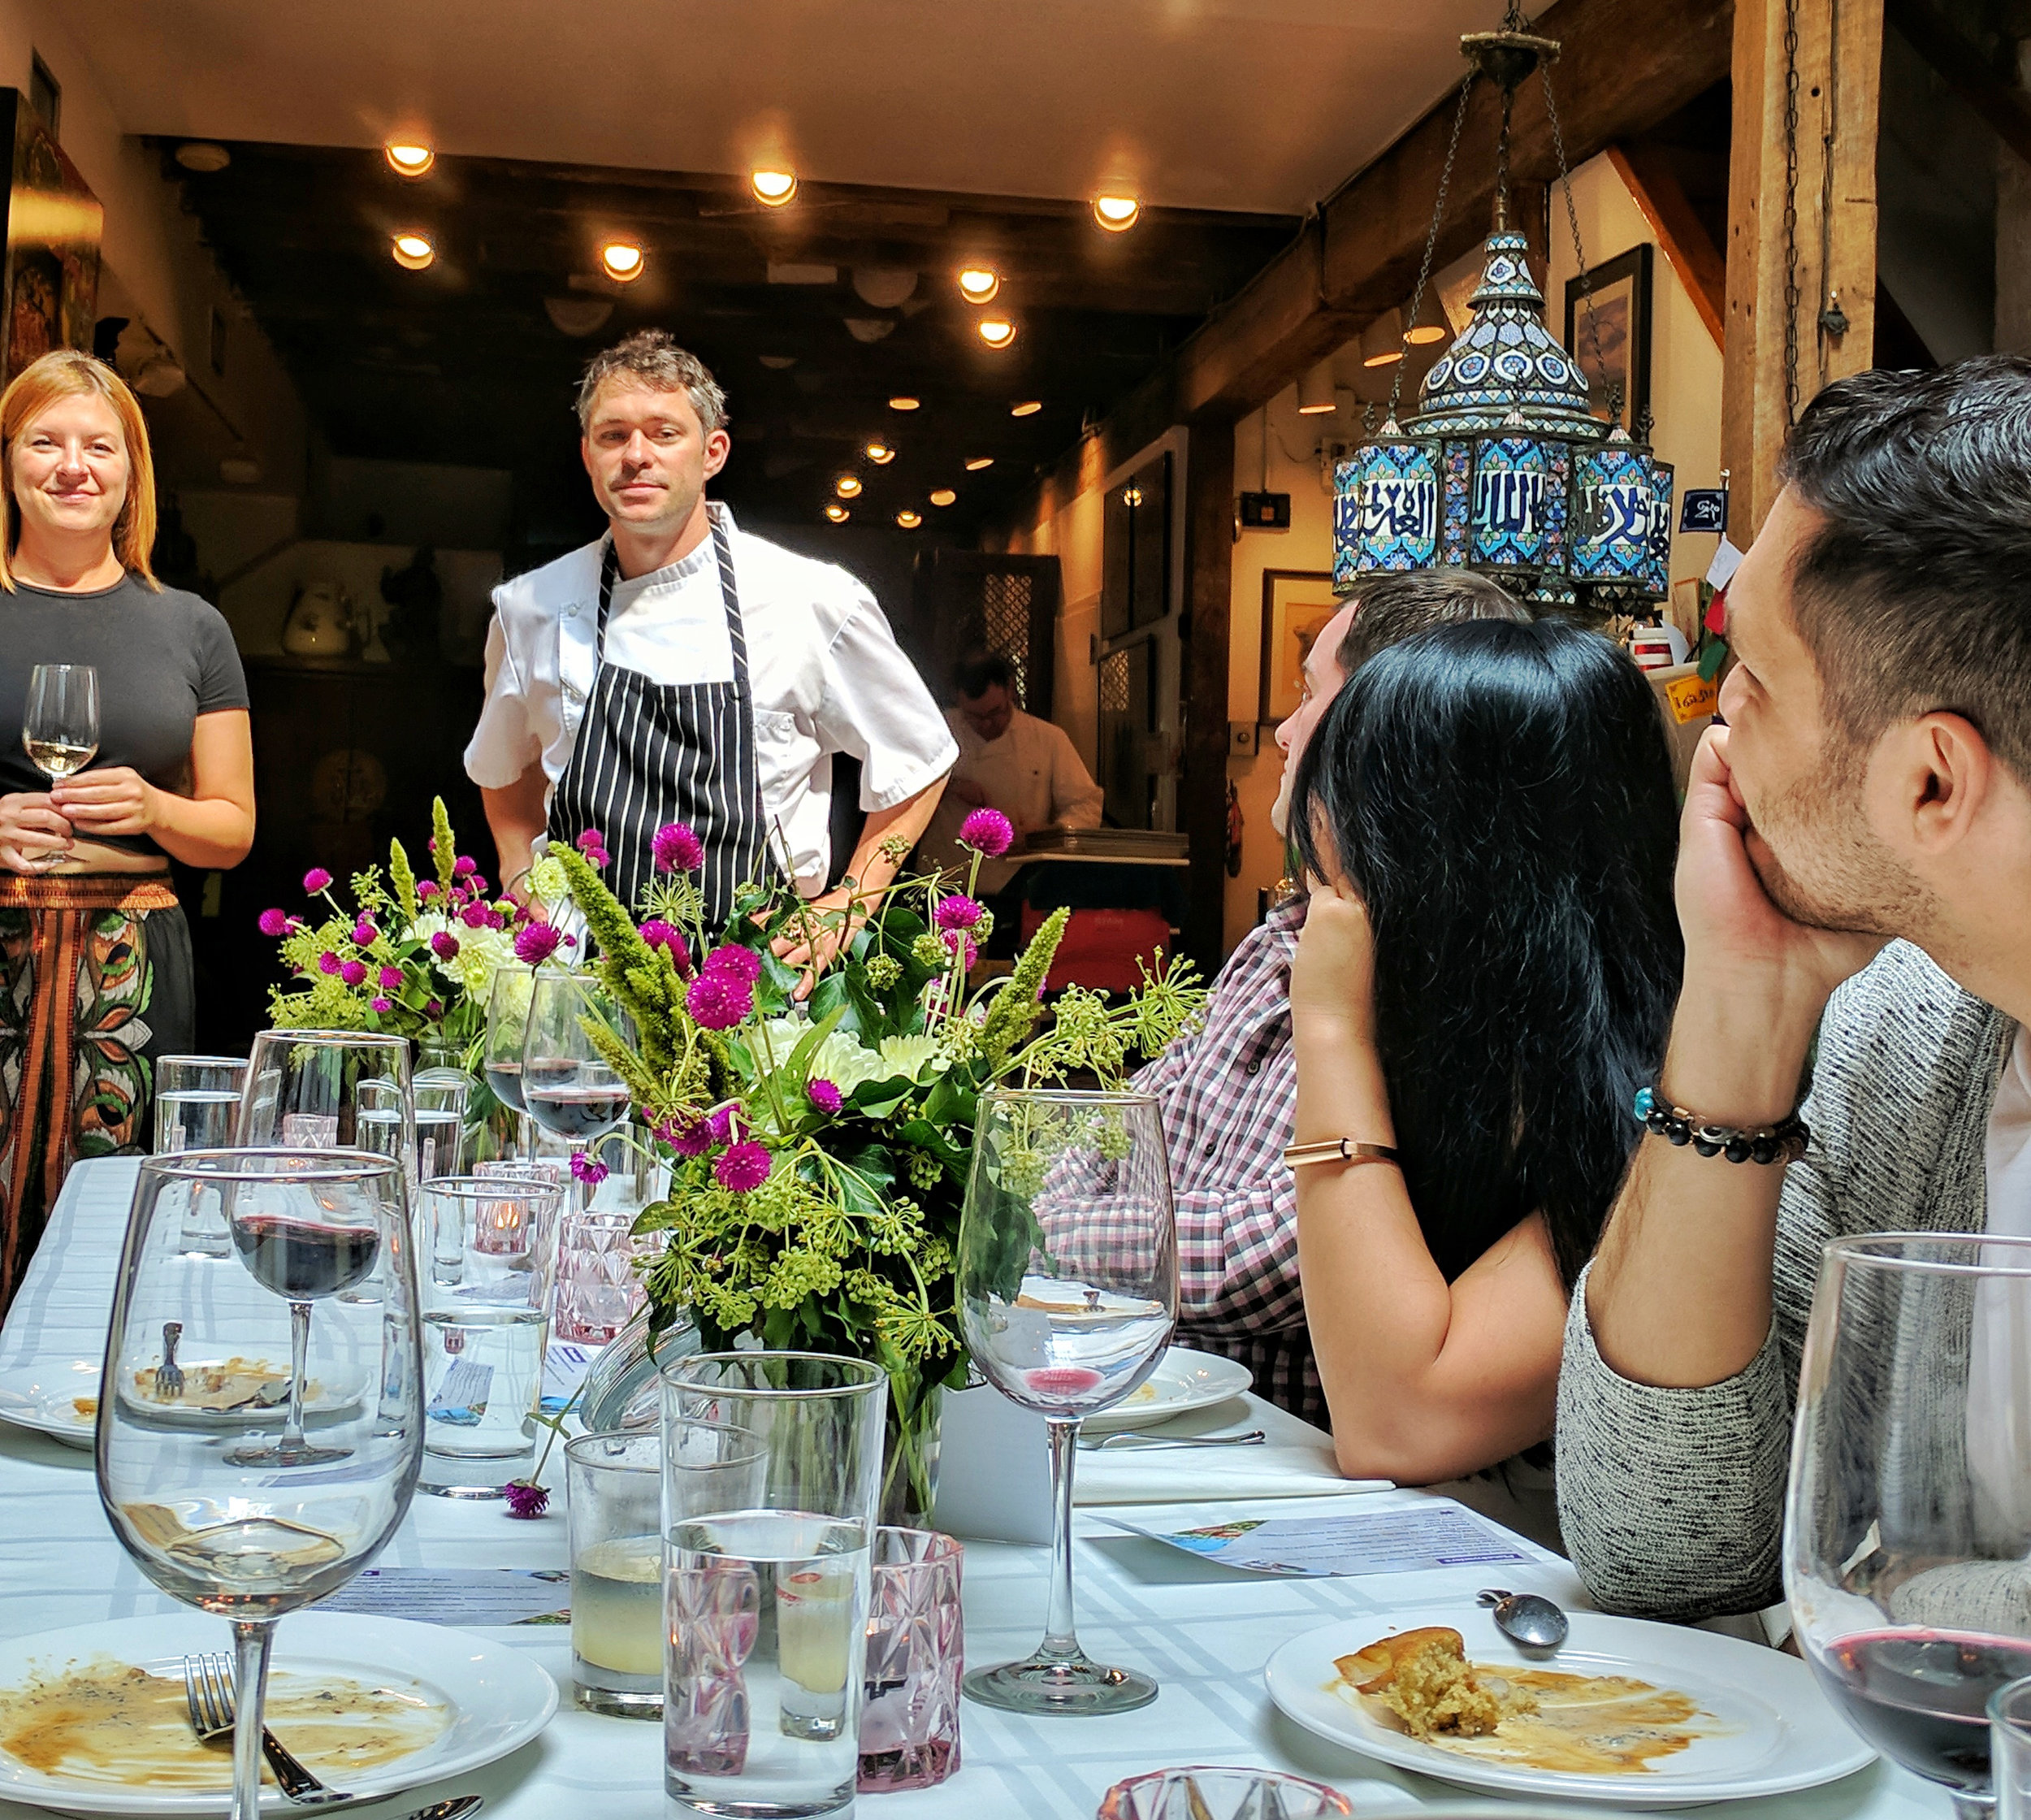 Founder Katie Smith-Adair and Chef Alex Sorenson talking about PlaceInvaders and the inspiration for the meal